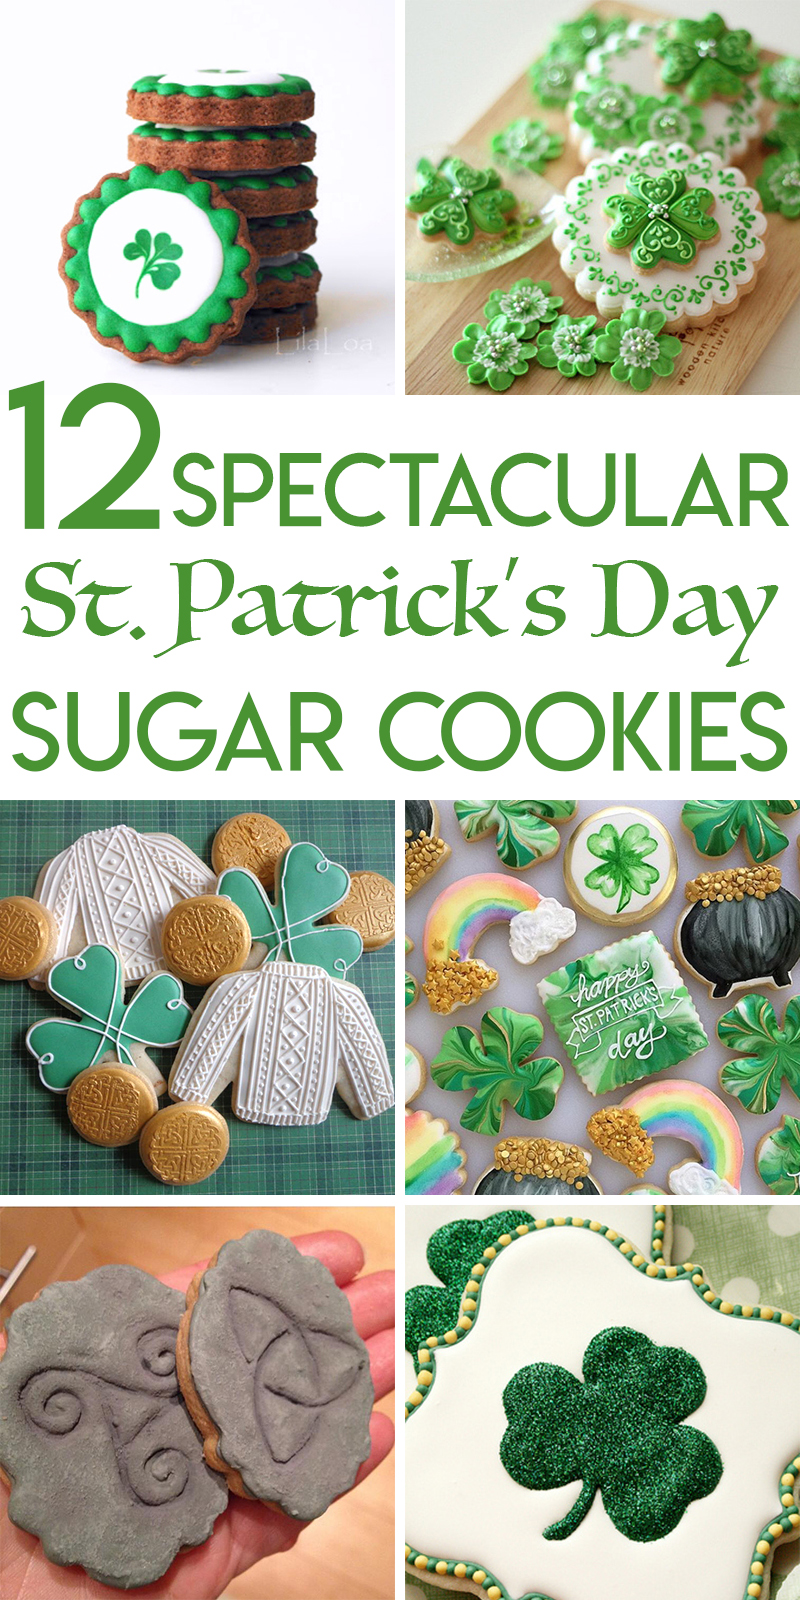 12 Stunning St. Patrick's Day Sugar Cookies